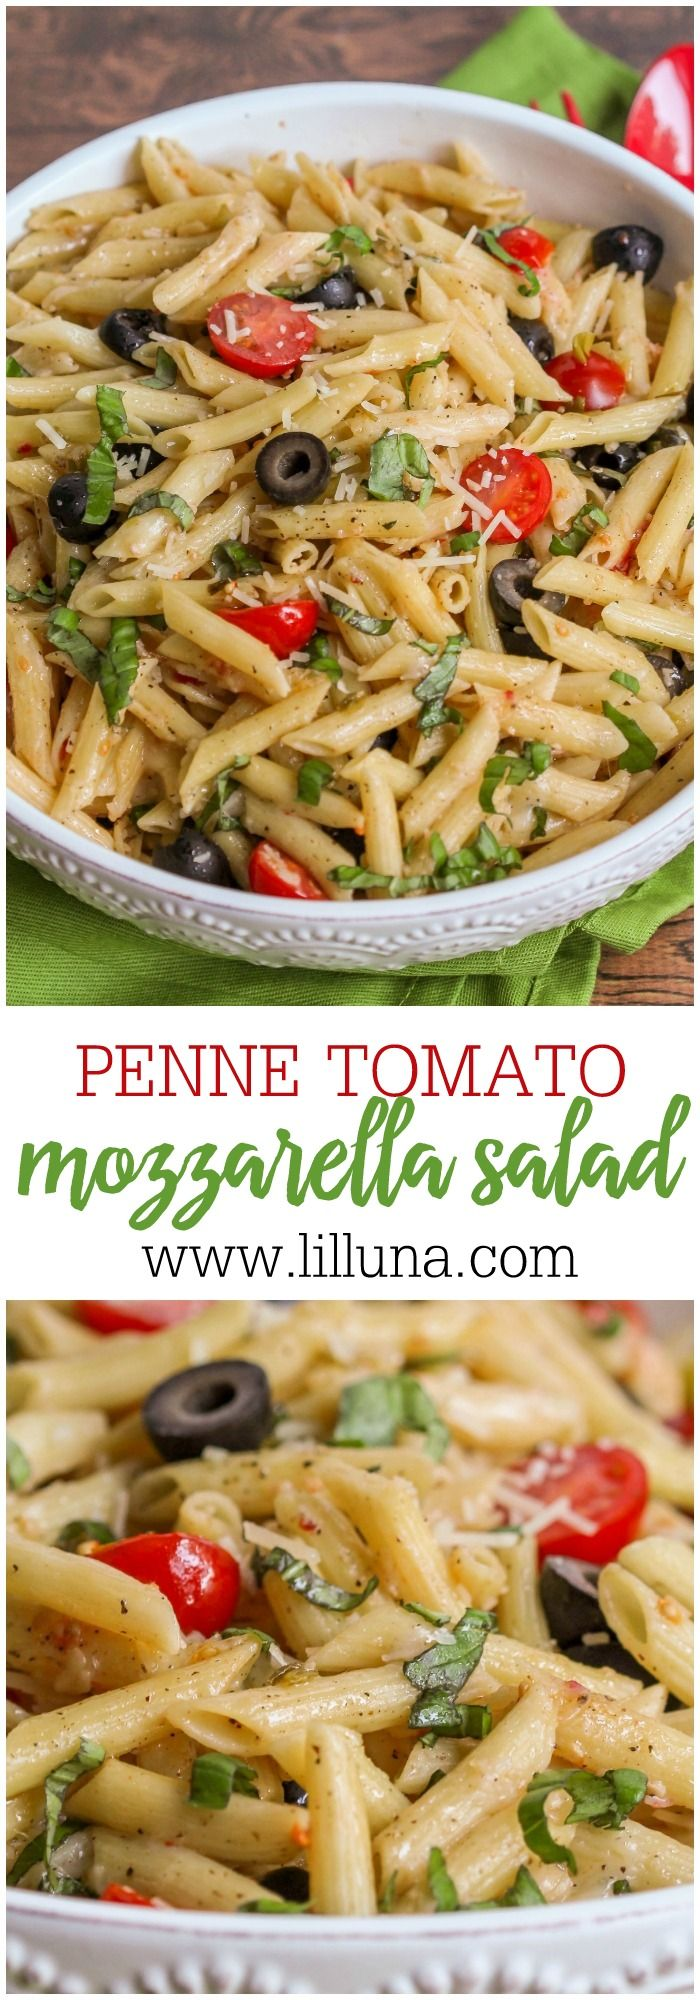 Penne Tomato Mozzarella Salad A Delicious Pasta Salad Filled With Pasta Tomatoes Olives